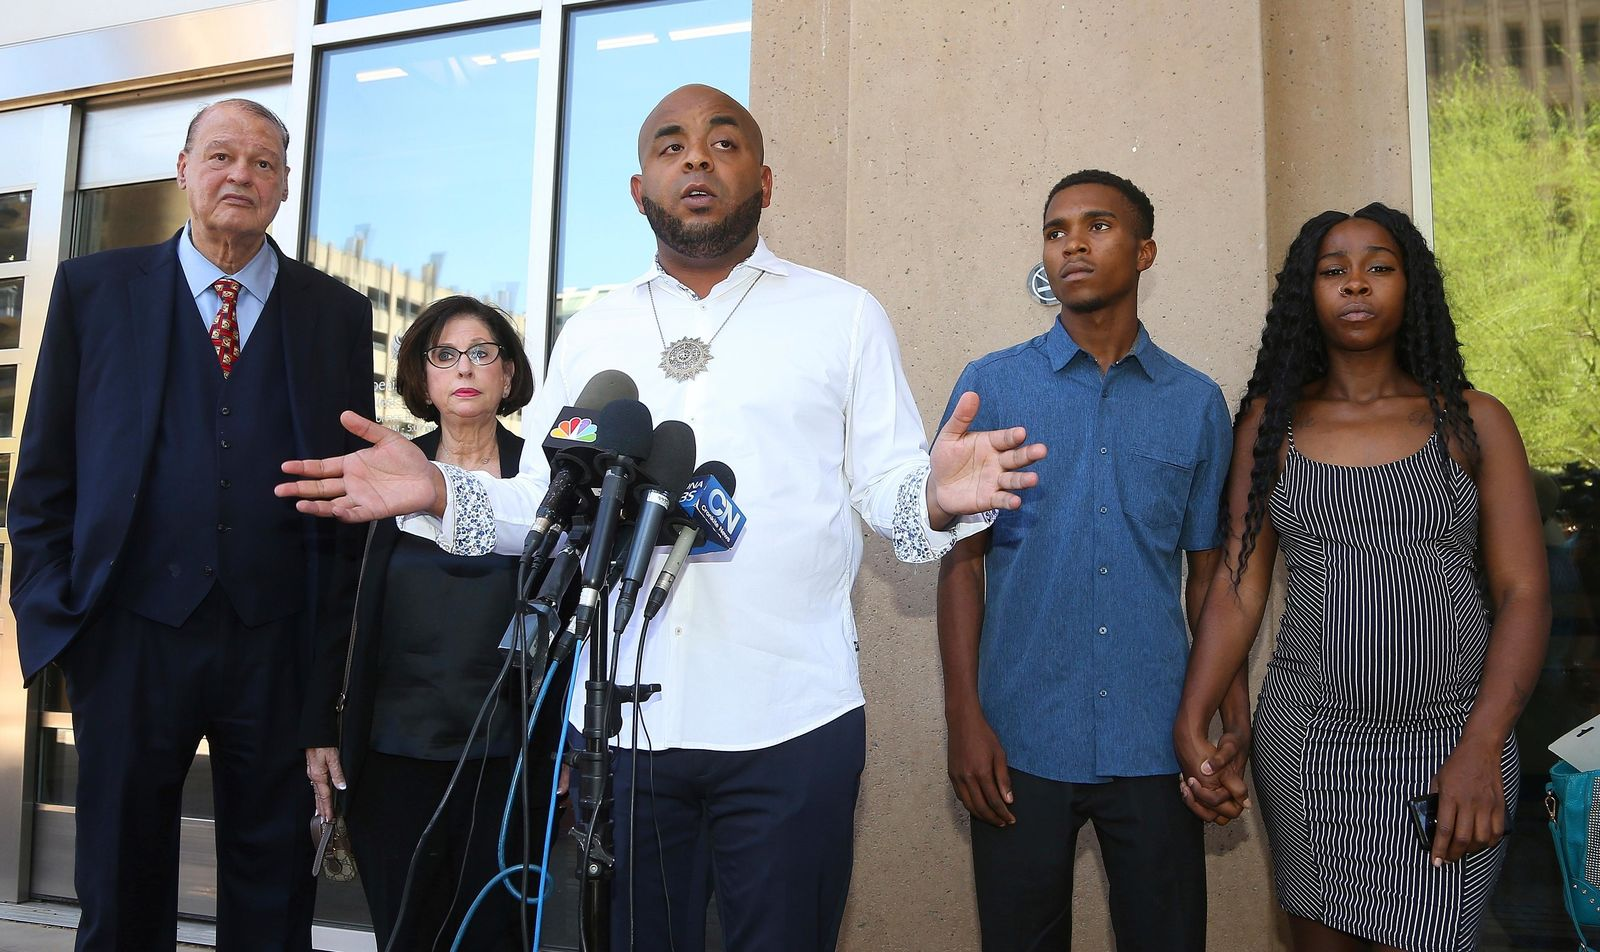 Rev. Jarrett Maupin, center, a civil rights advocate, speaks during a news conference as Dravon Ames, second from right, and Iesha Harper, right, are joined by their attorneys Sandra Slaton, second from left, and Tom Horne, left, at Phoenix City Hall, Monday, June 17, 2019, in Phoenix. (AP Photo/Ross D. Franklin)